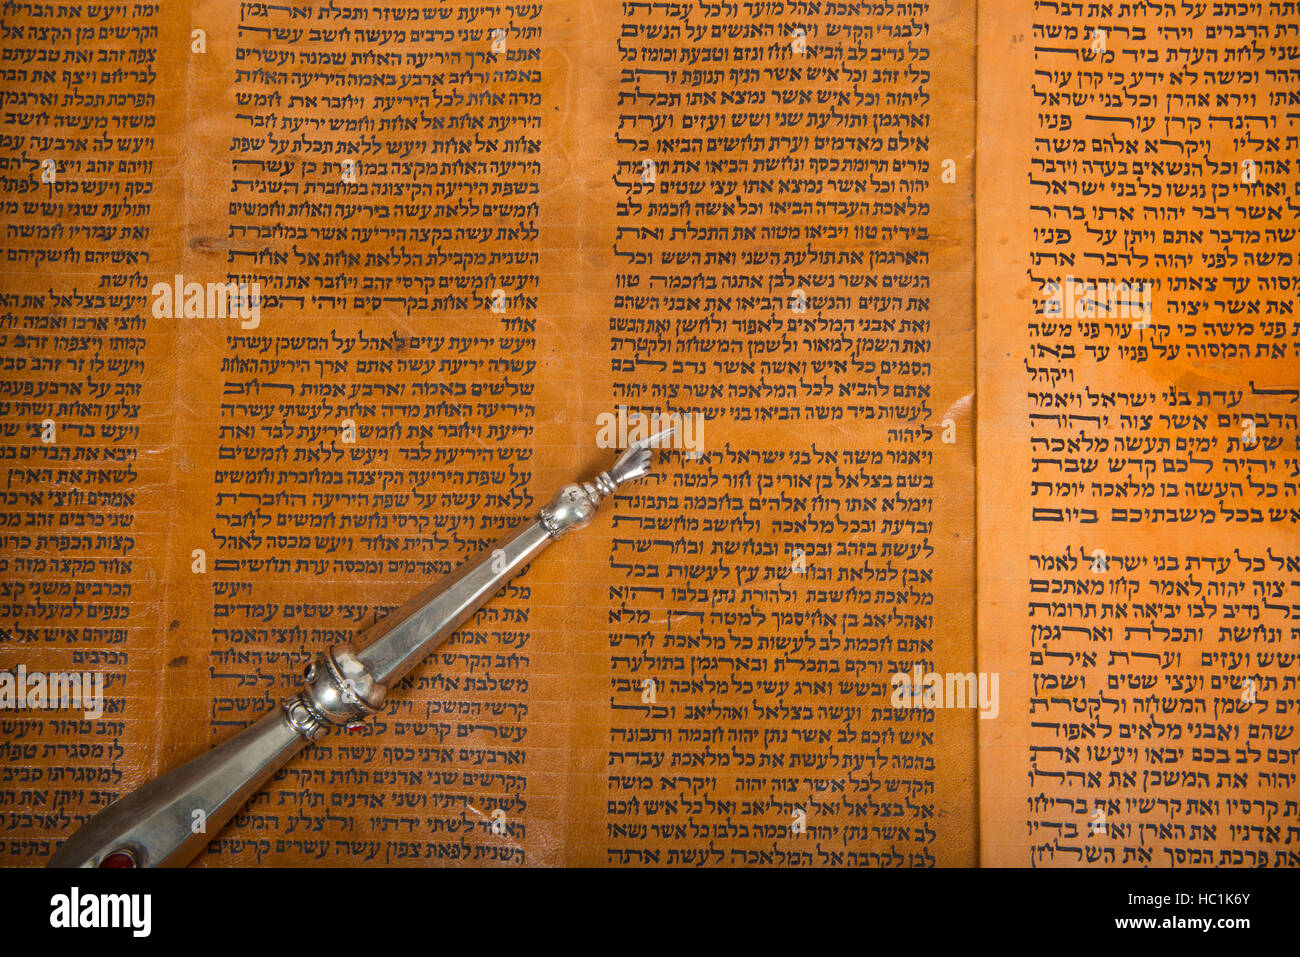 reading from an ancient torah scroll, close up - Stock Image